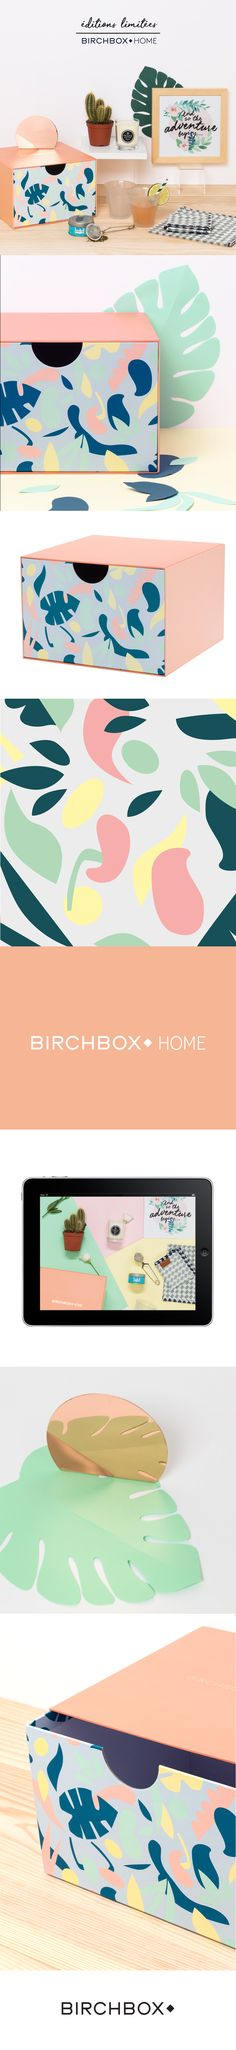 Limited Edition by Birchbox Home - 2017